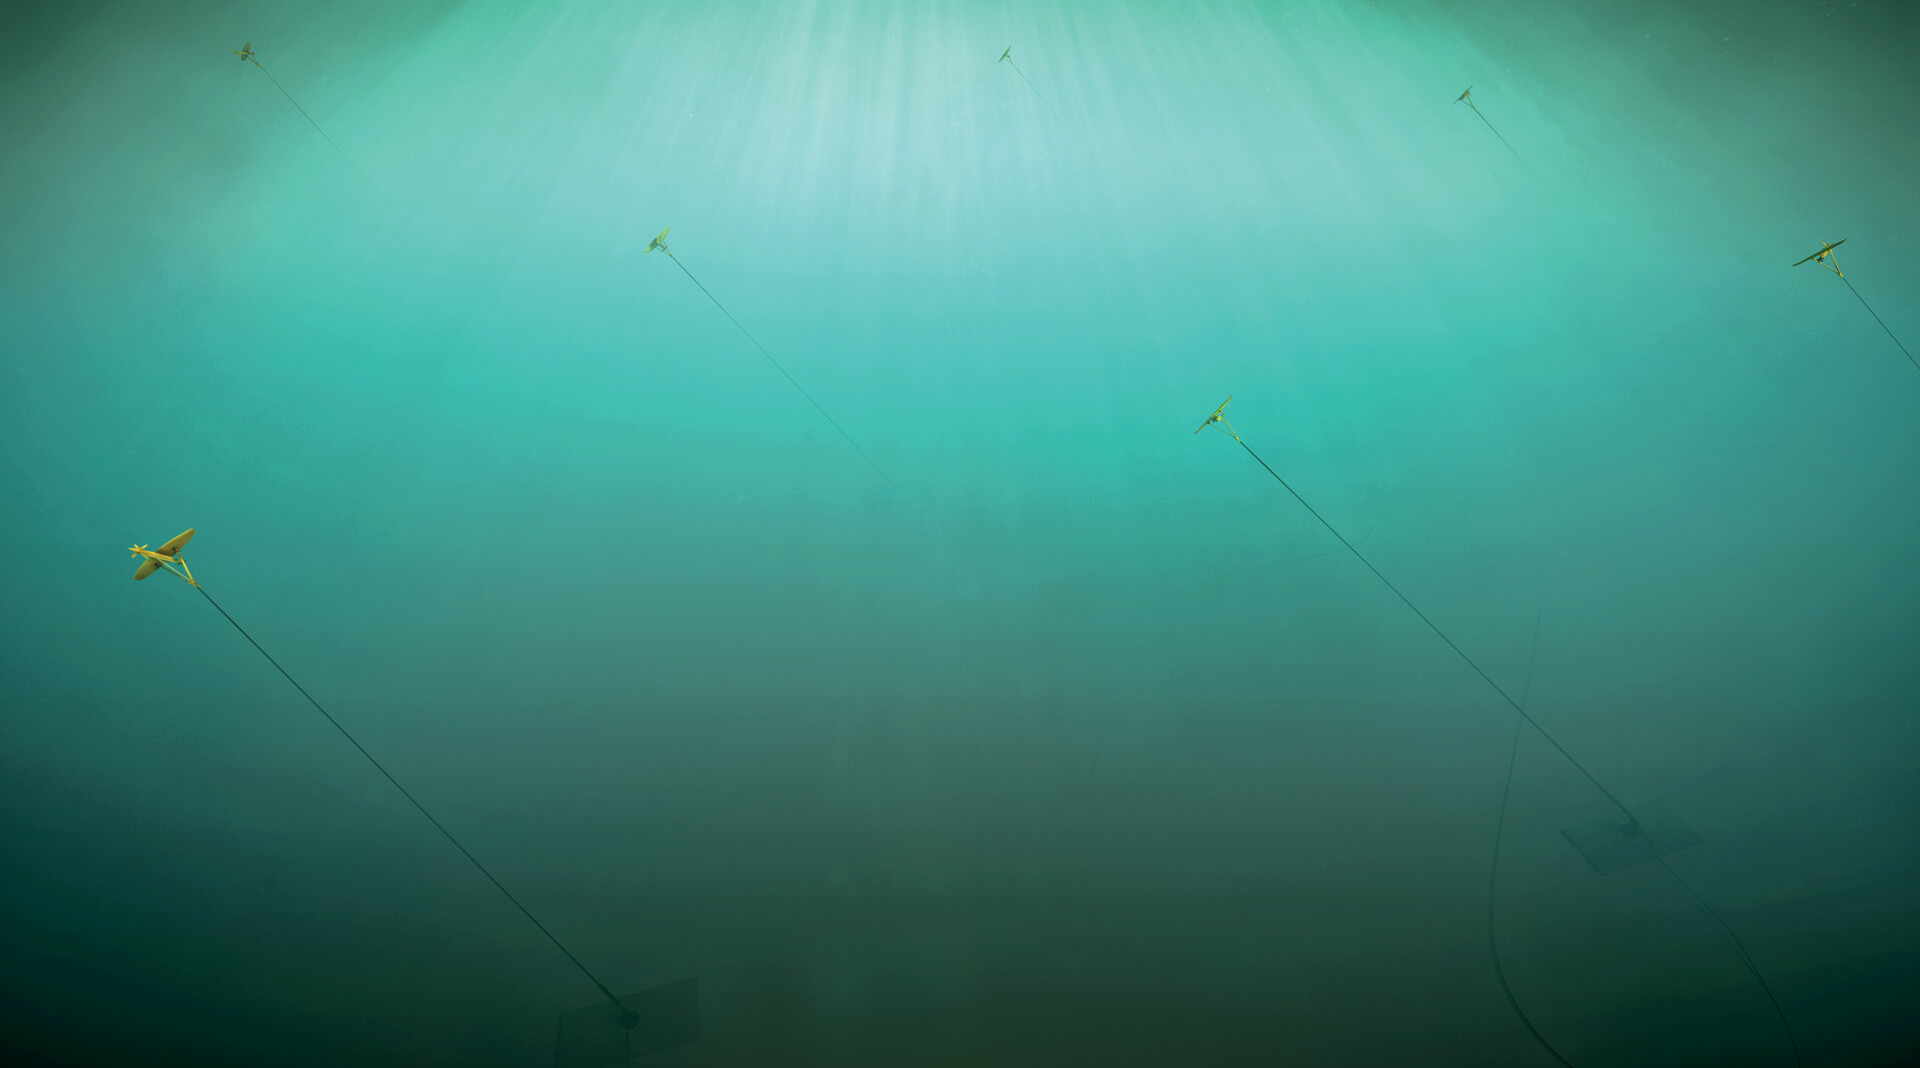 SandersStudios_Minesto_DeepGreen_Subsea Illustration 05